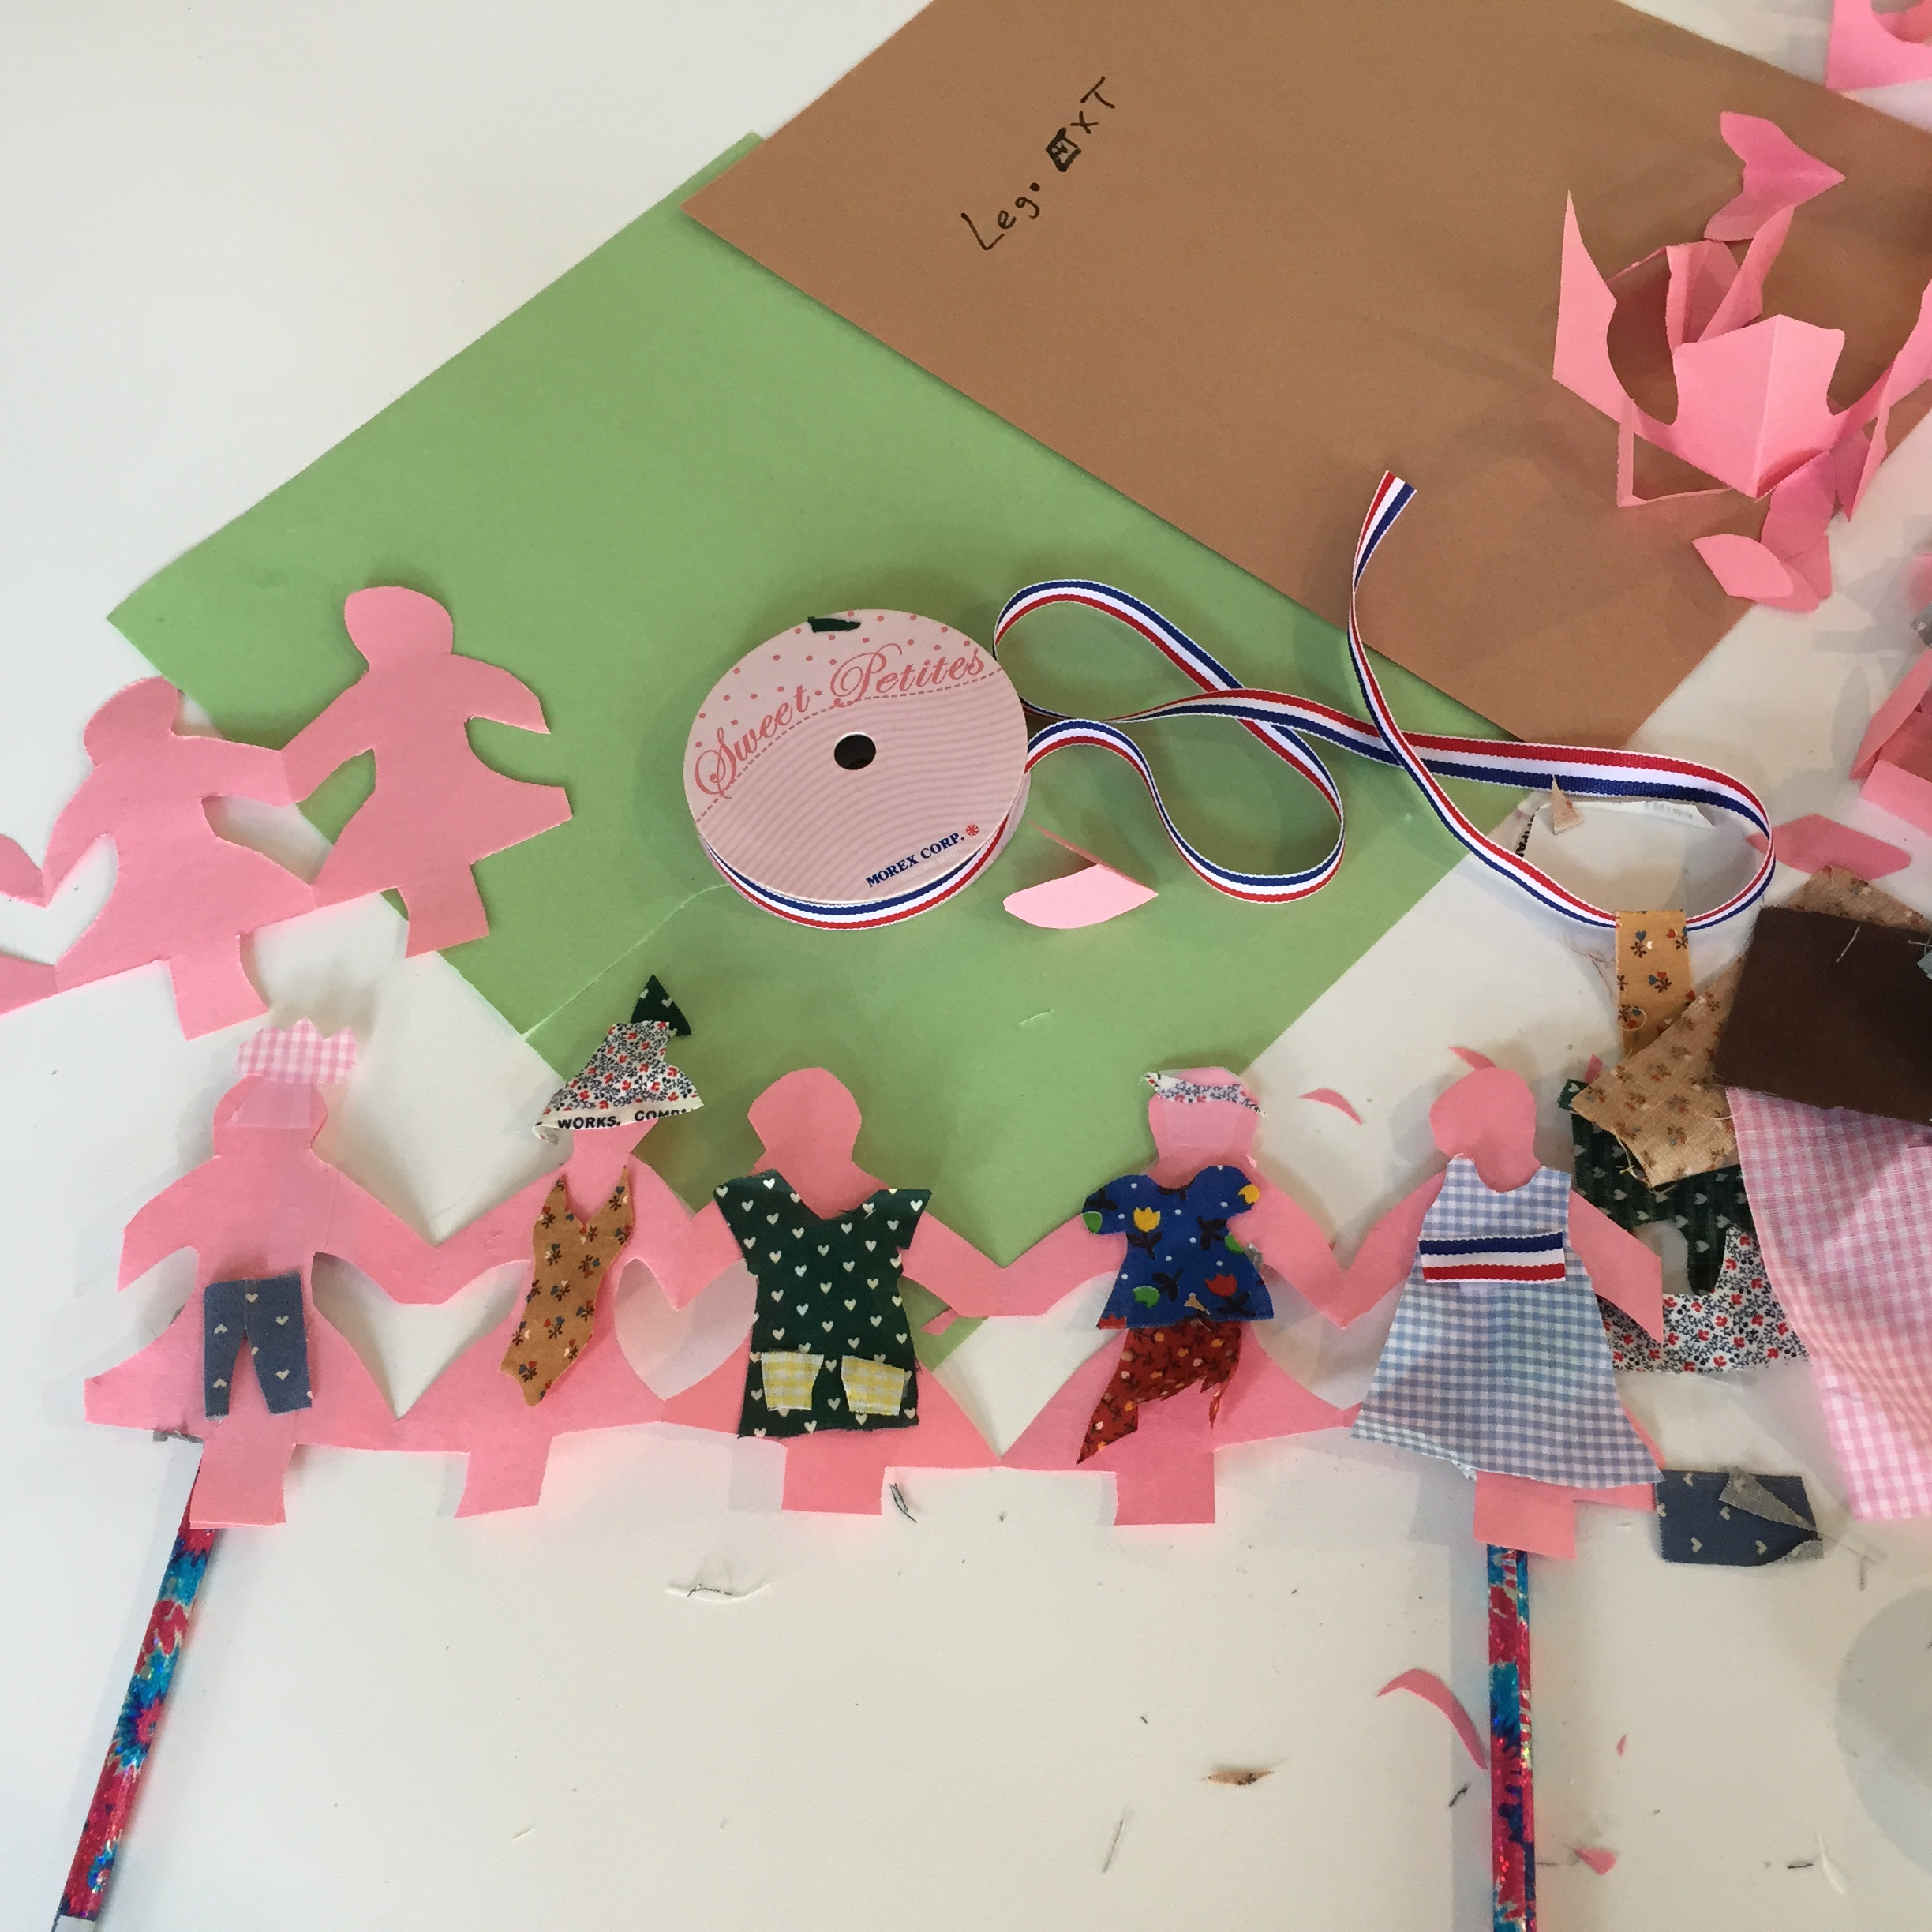 String of paper dolls made from So Made kit